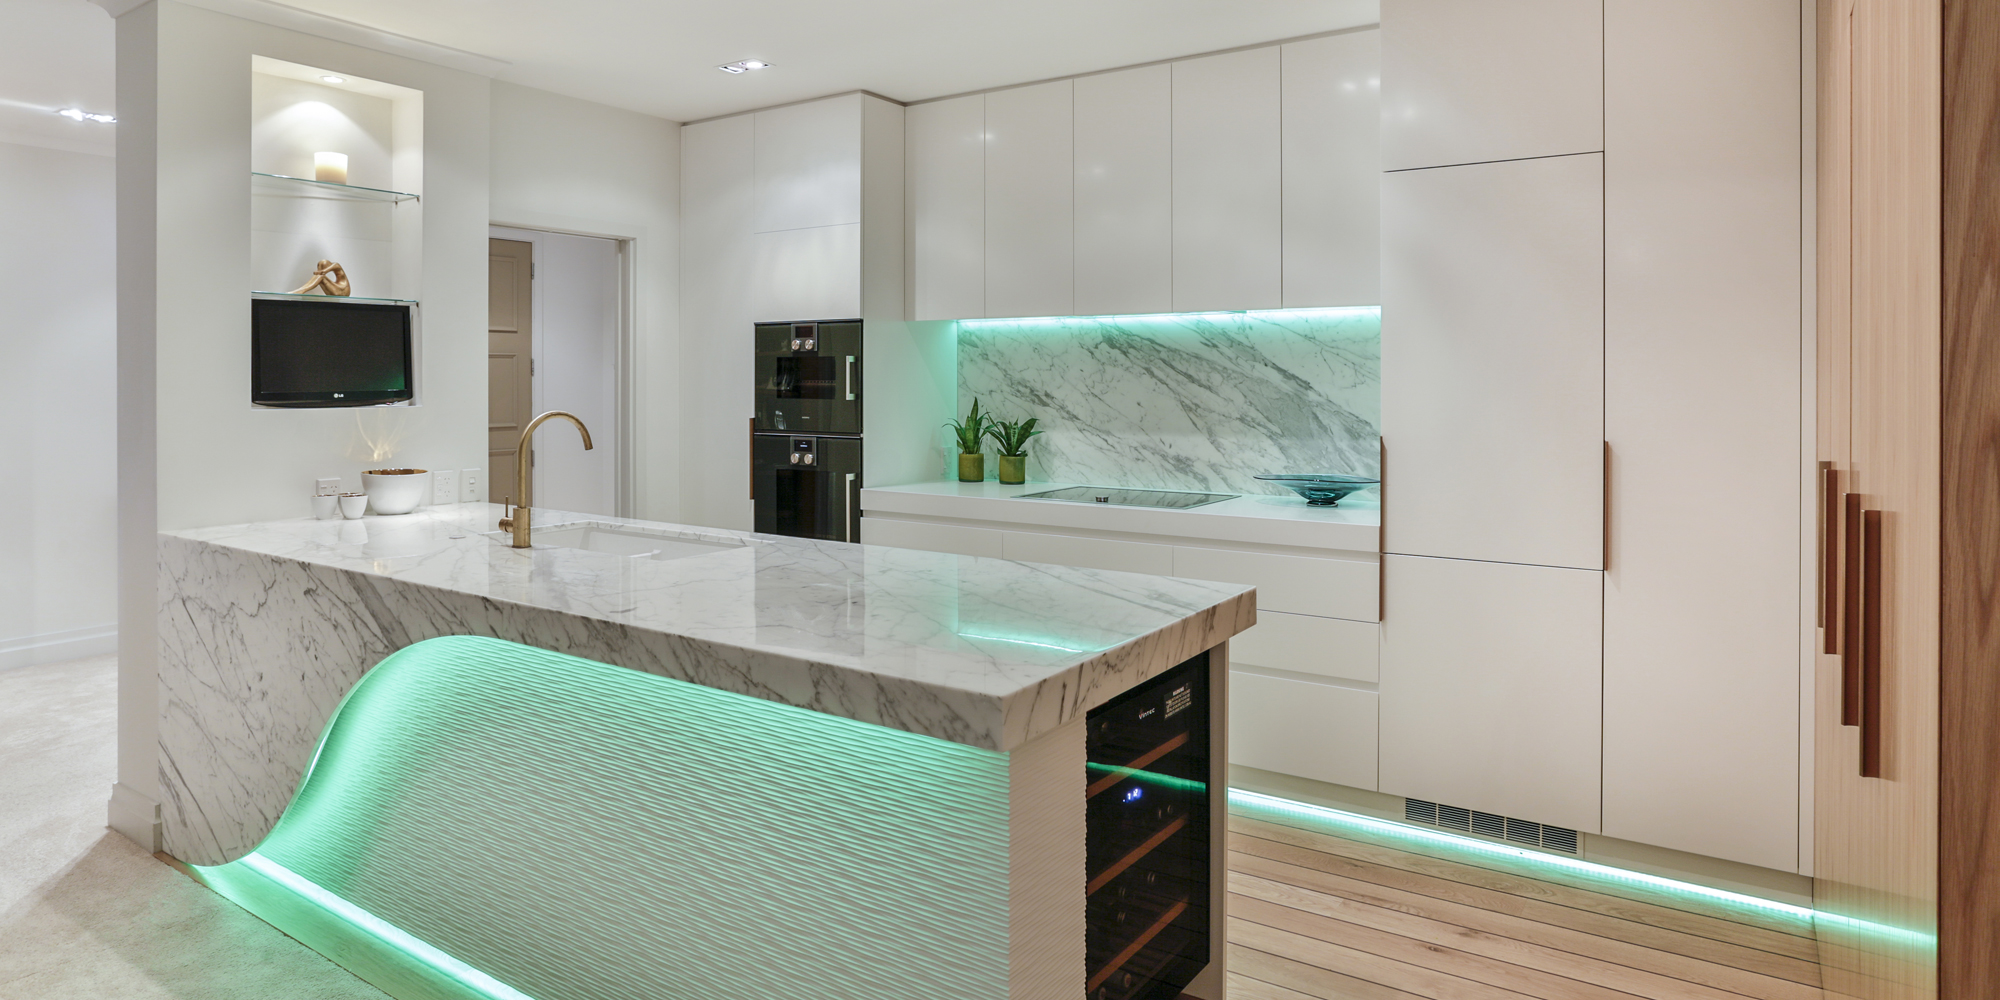 KBD-Viaduct-Kitchen-1.jpg